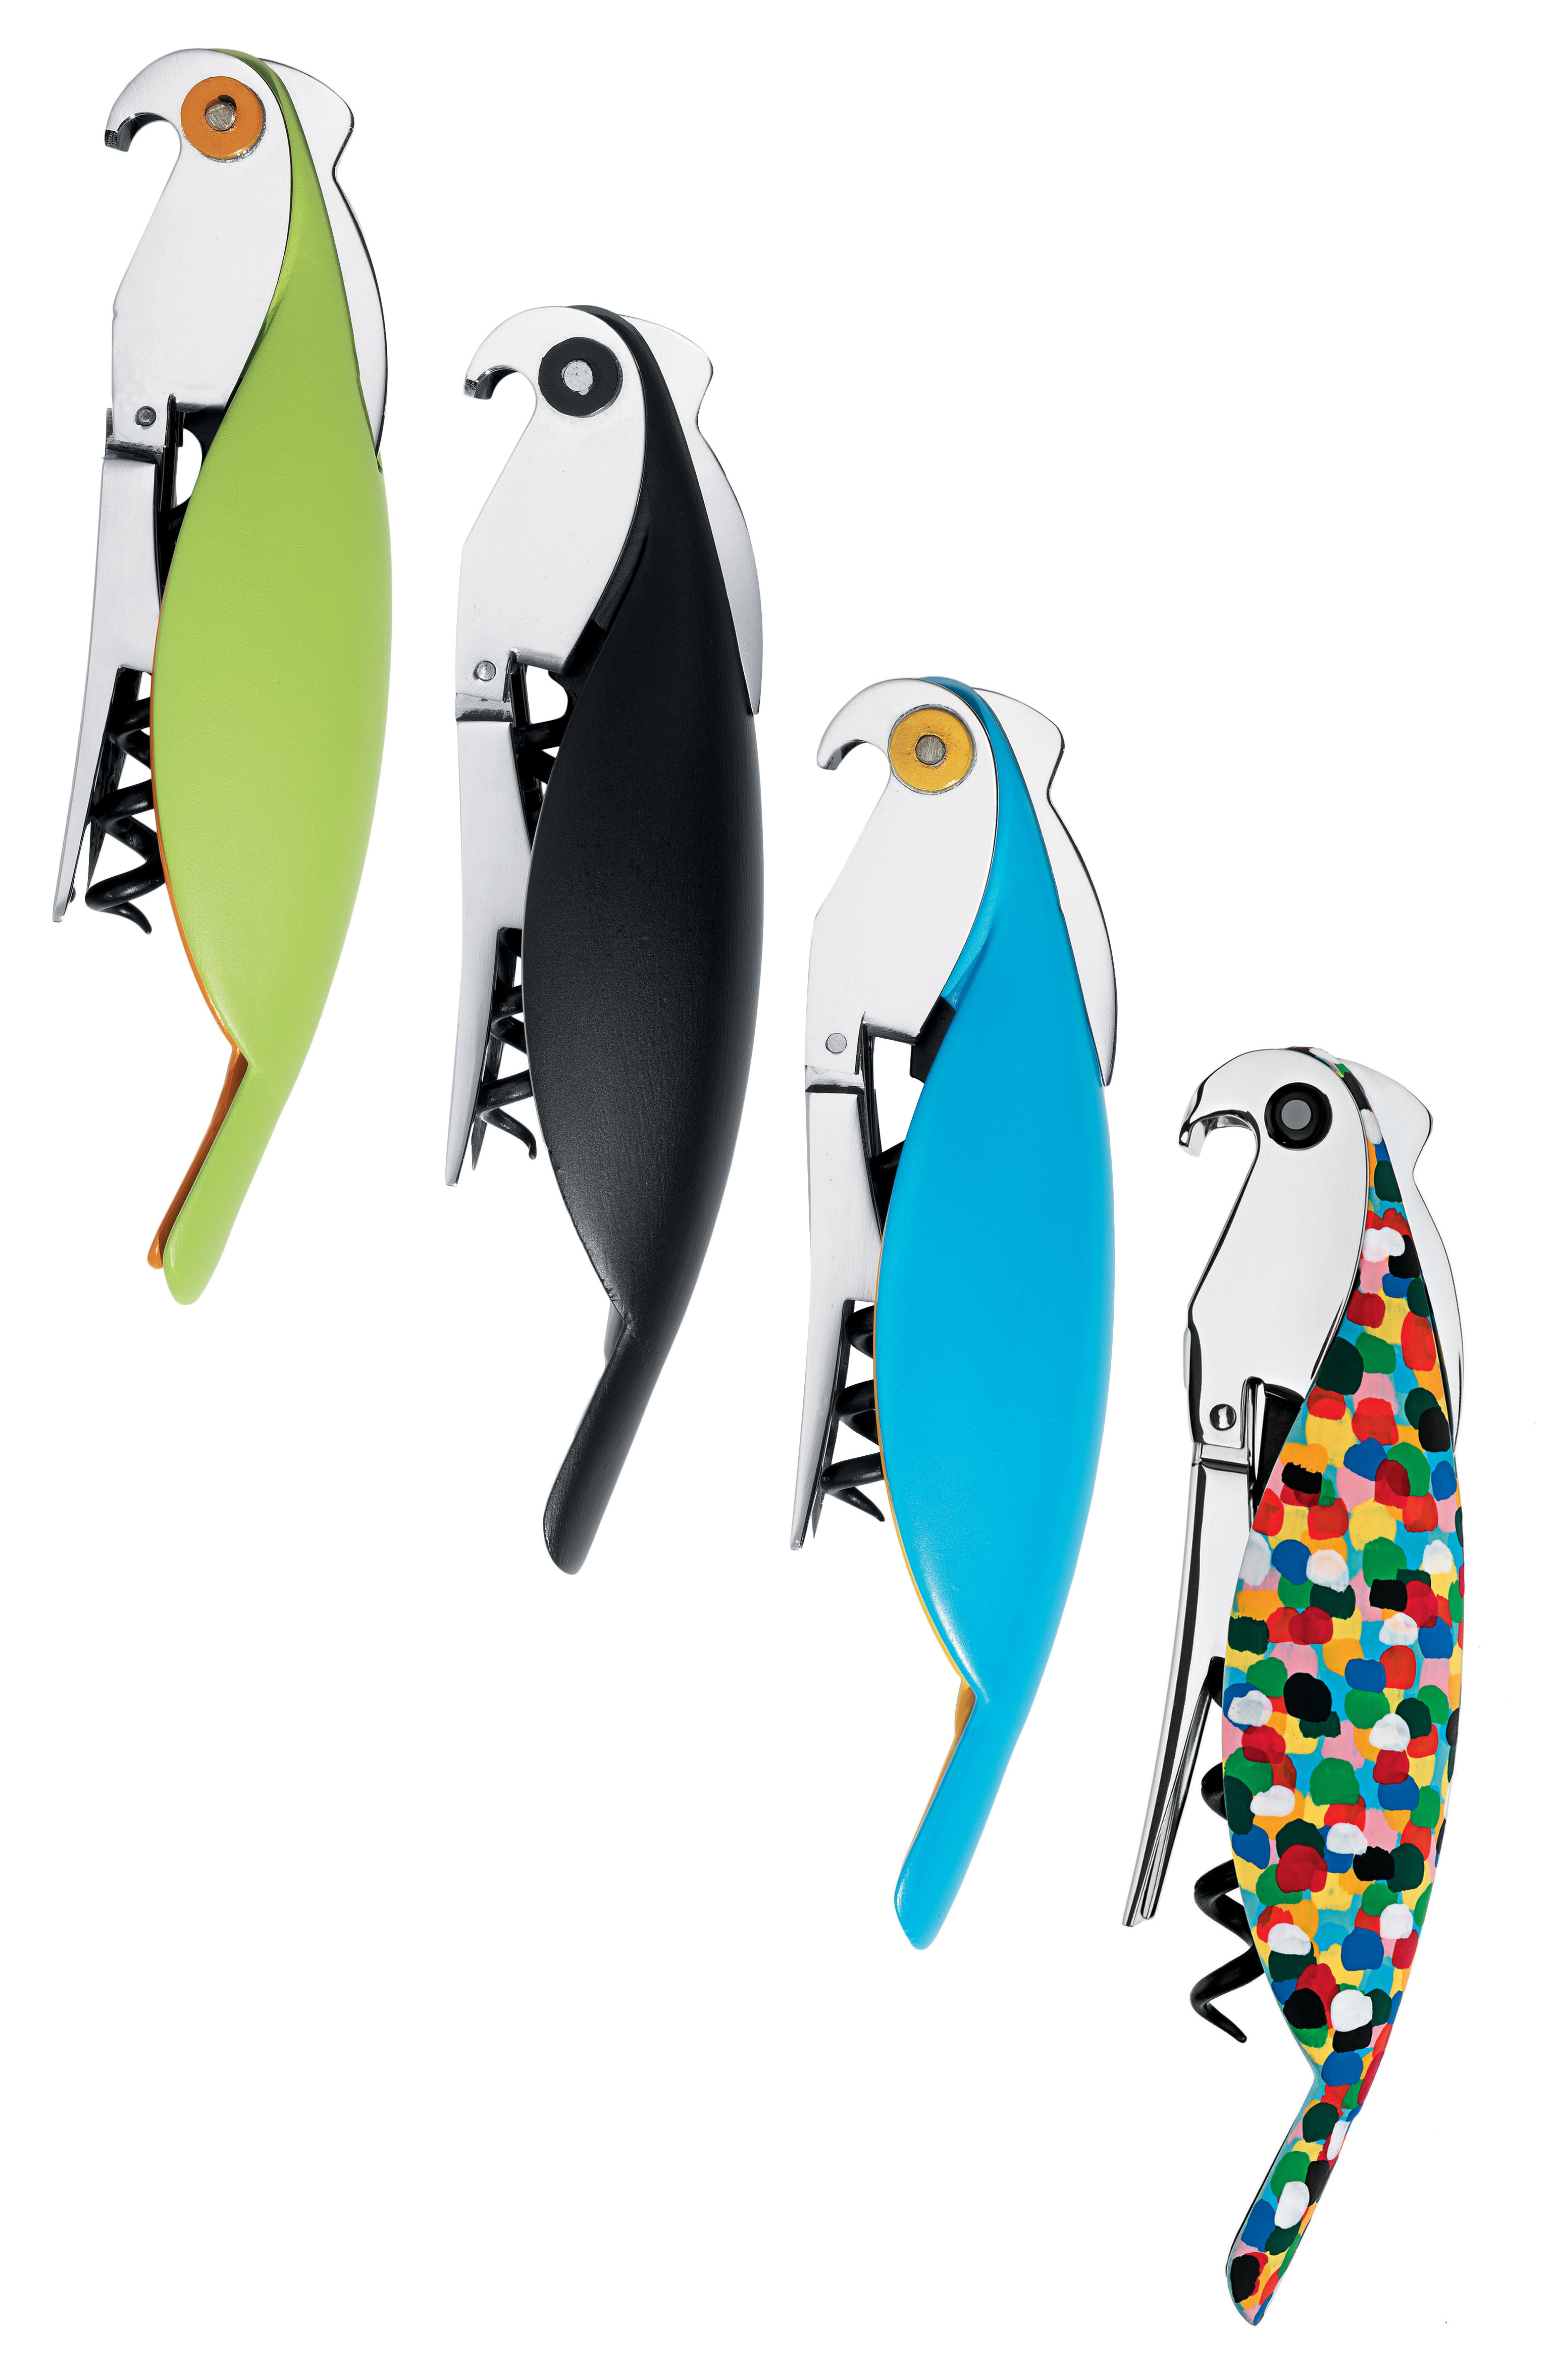 Kitchenware Fun In The Kitchen Parrot Bottle Opener By A Di Alessi Black